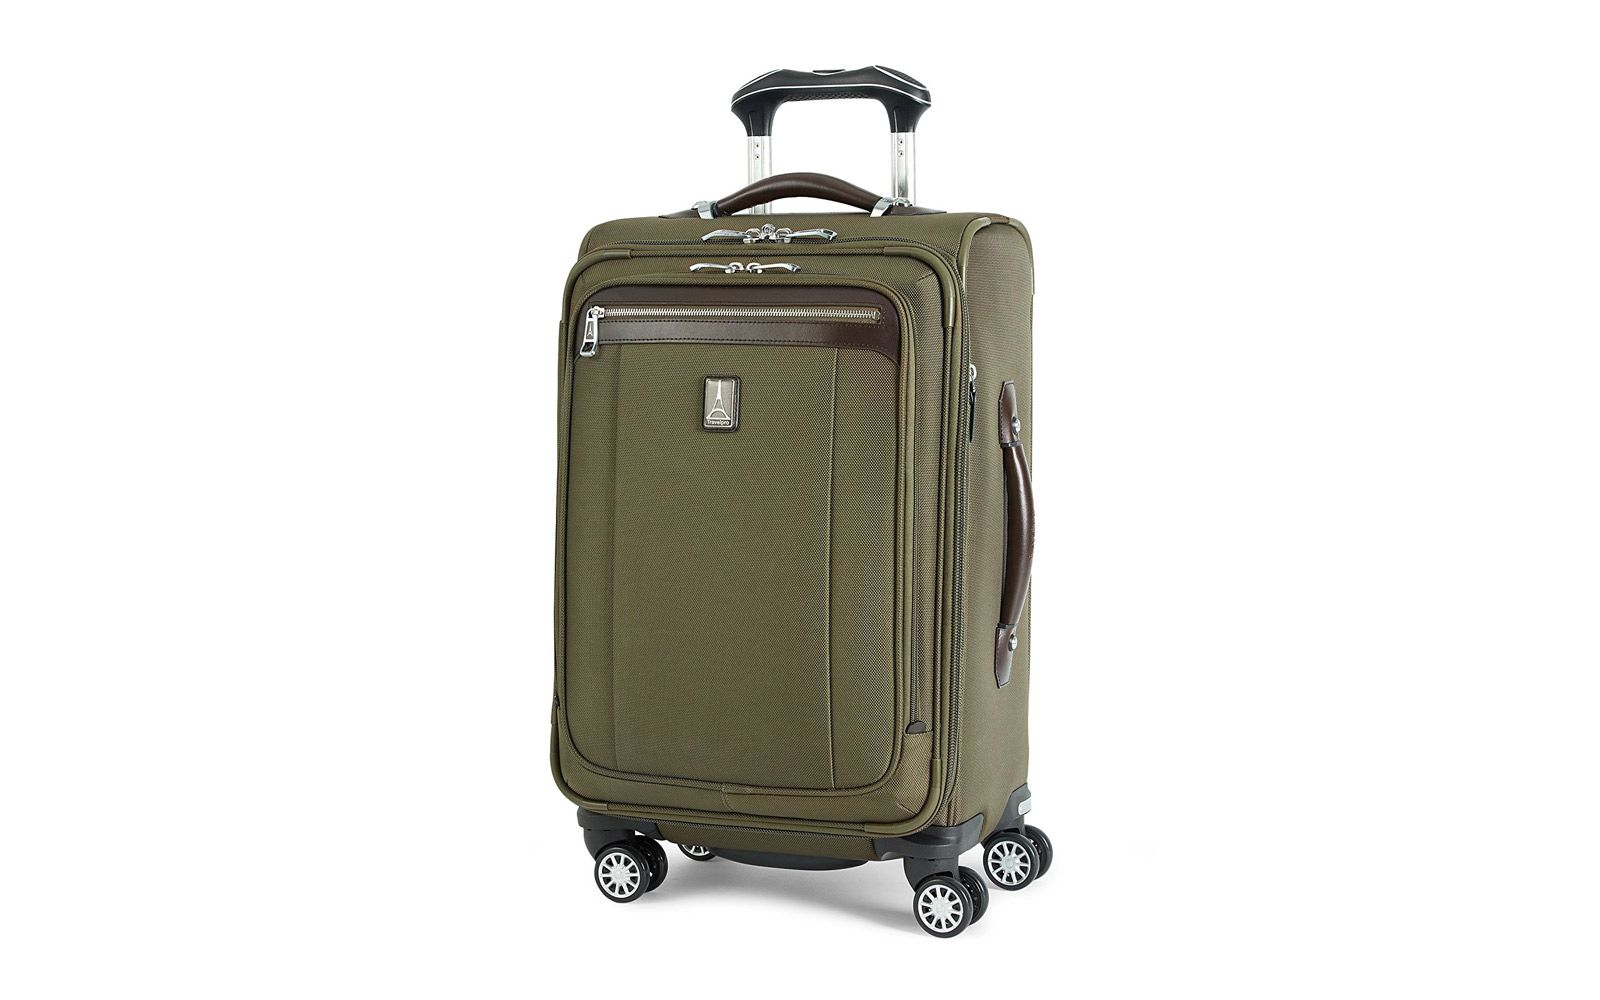 A Carry On Luggage Size Guide By Airline In 2021 Luggage Sizes Carry On Bag Size Carry On Luggage